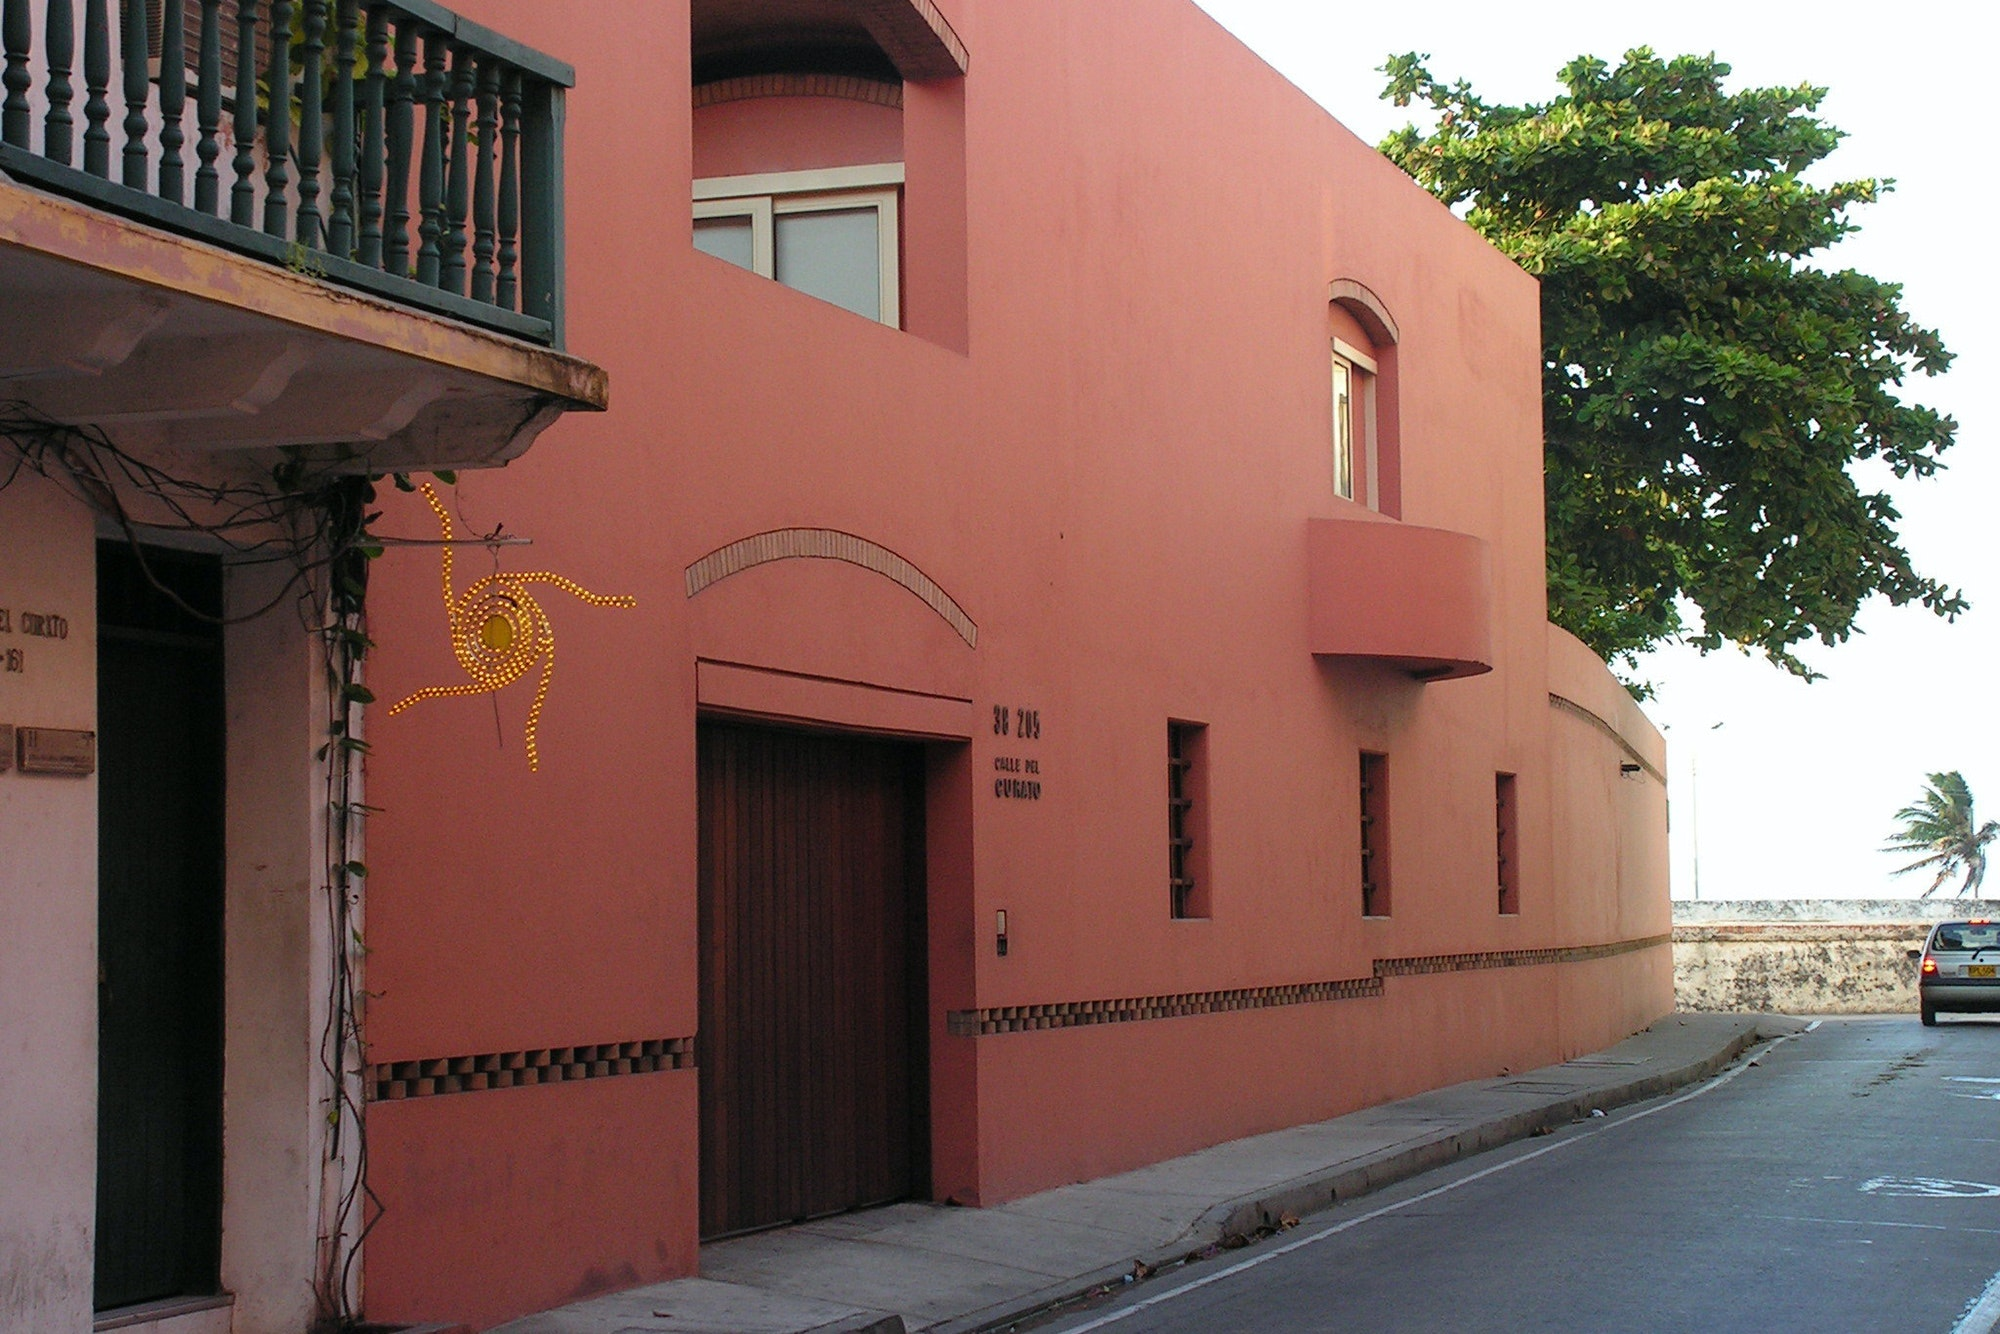 García Márquez lived in Mexico City when he died, but he still maintained this house in Cartagena in his later years.